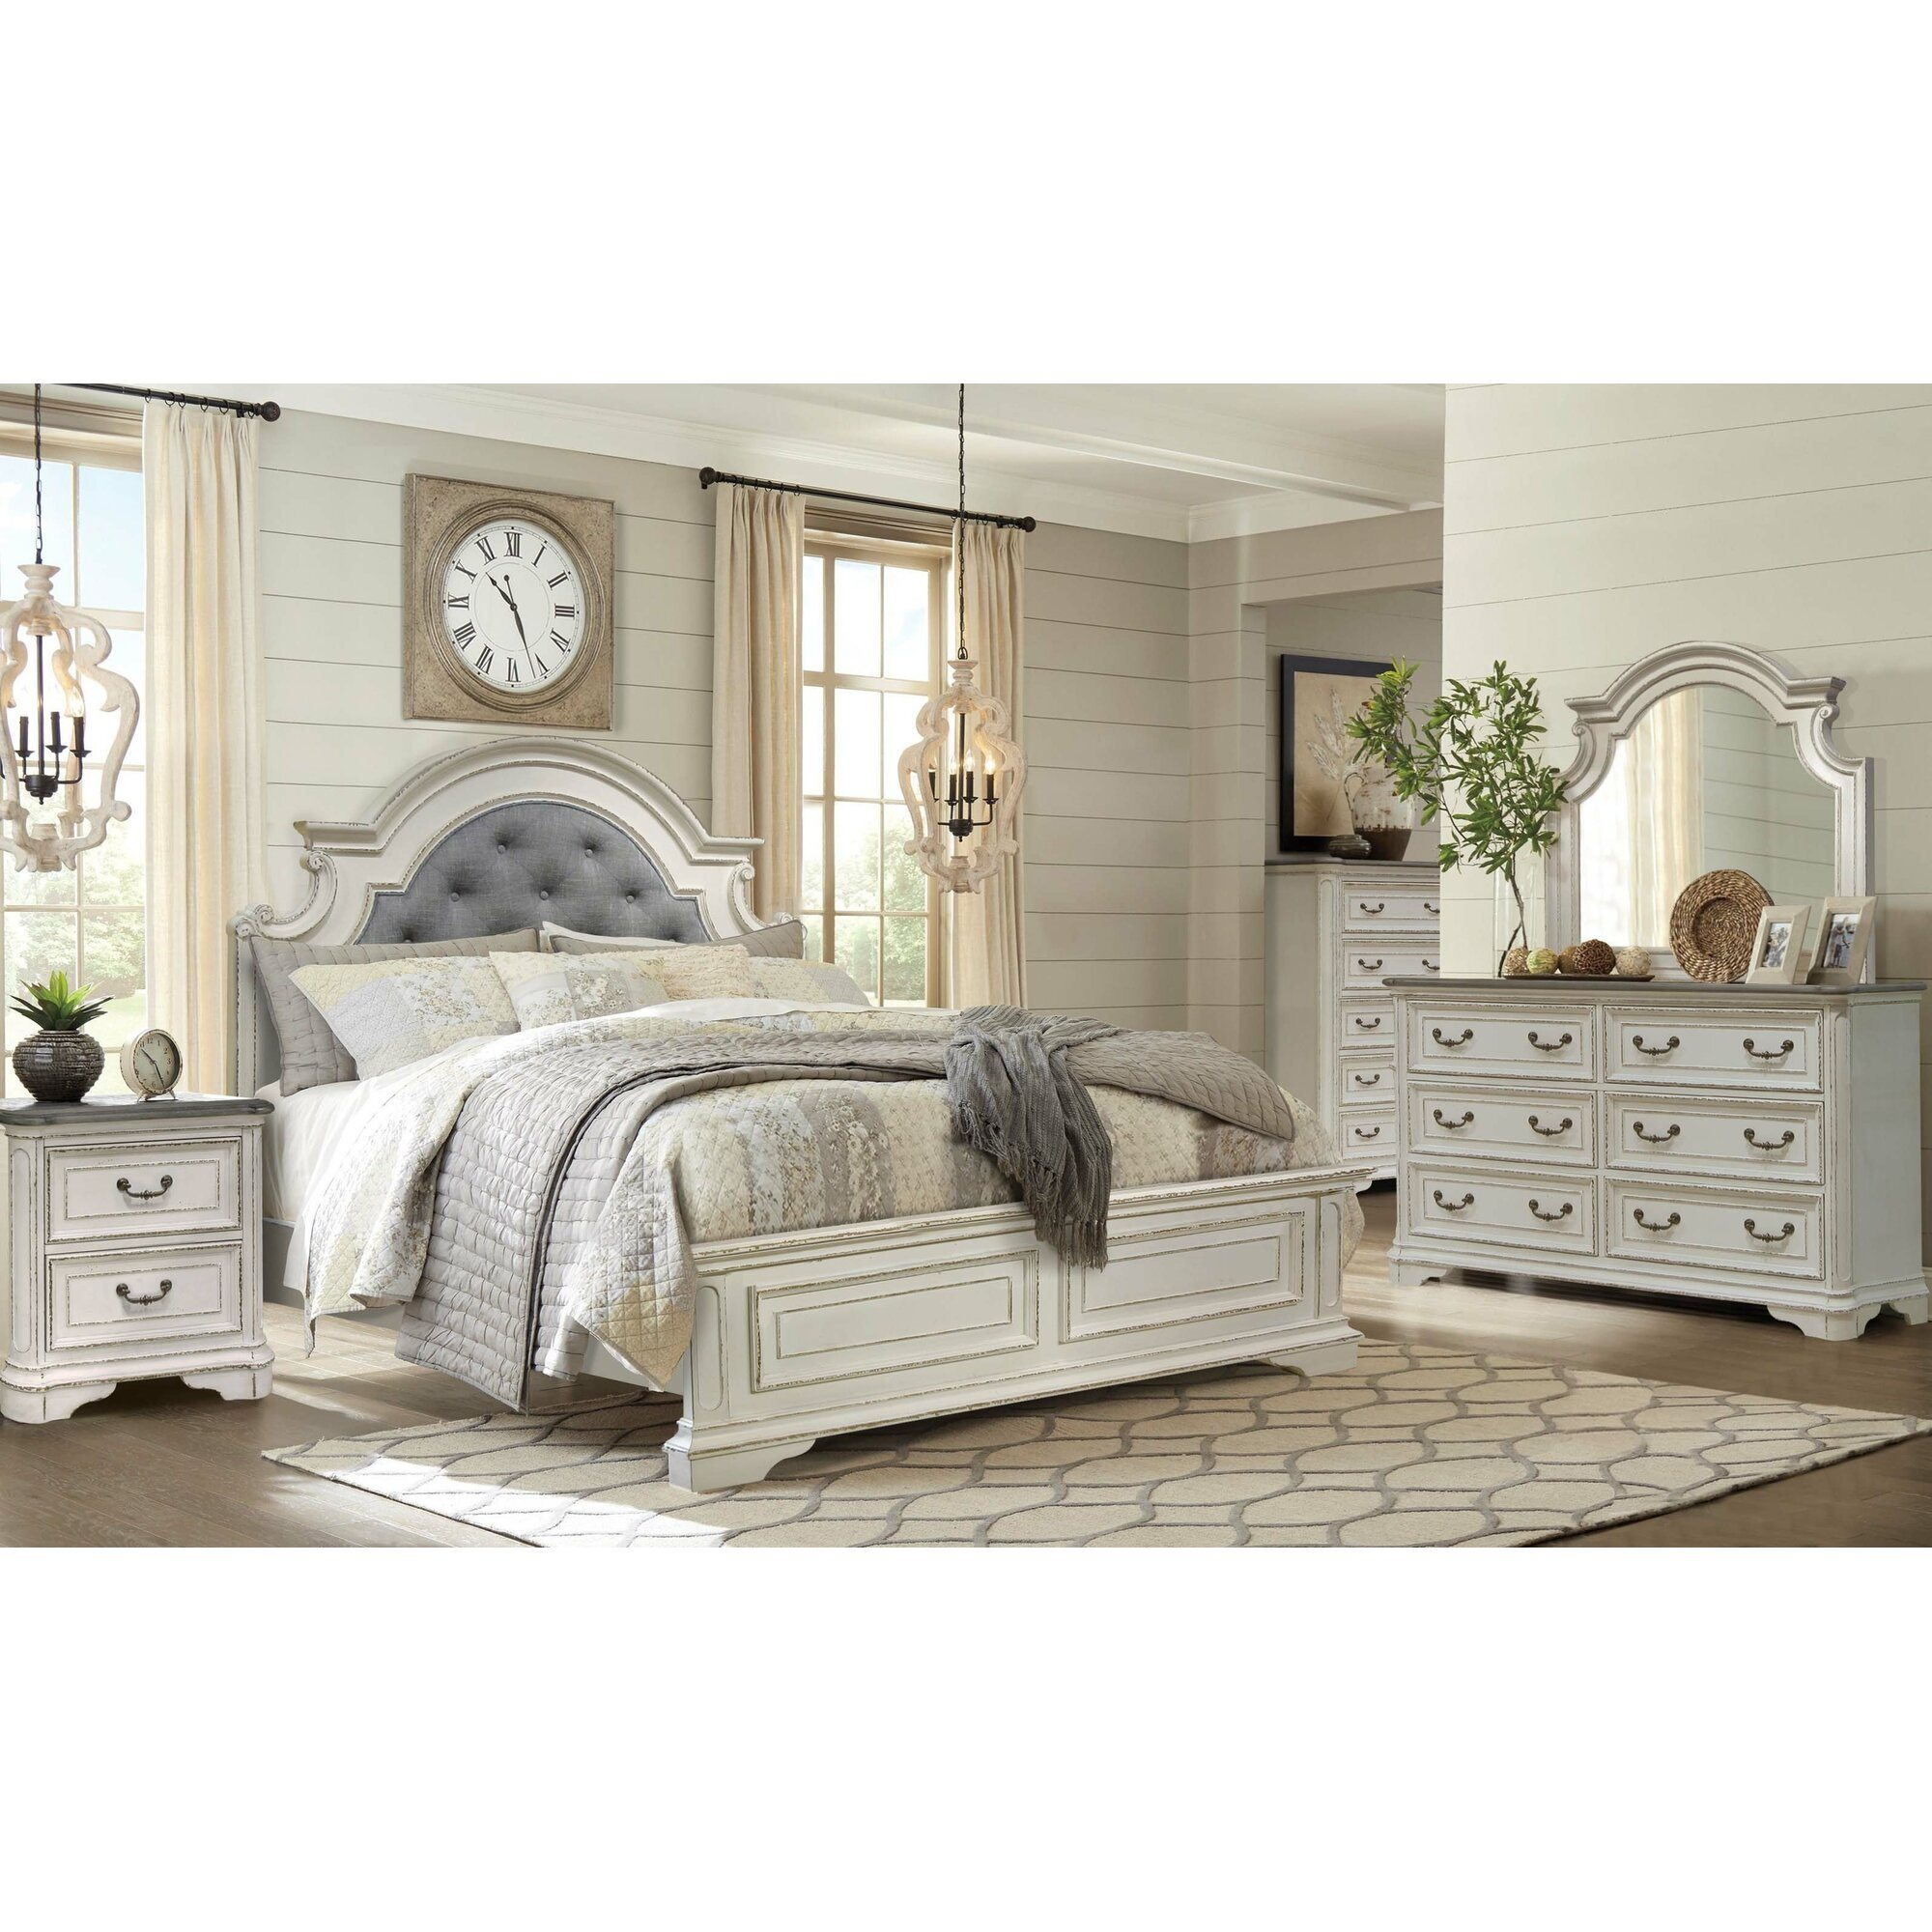 The Bedroom Set For You Wayfair Email Archive